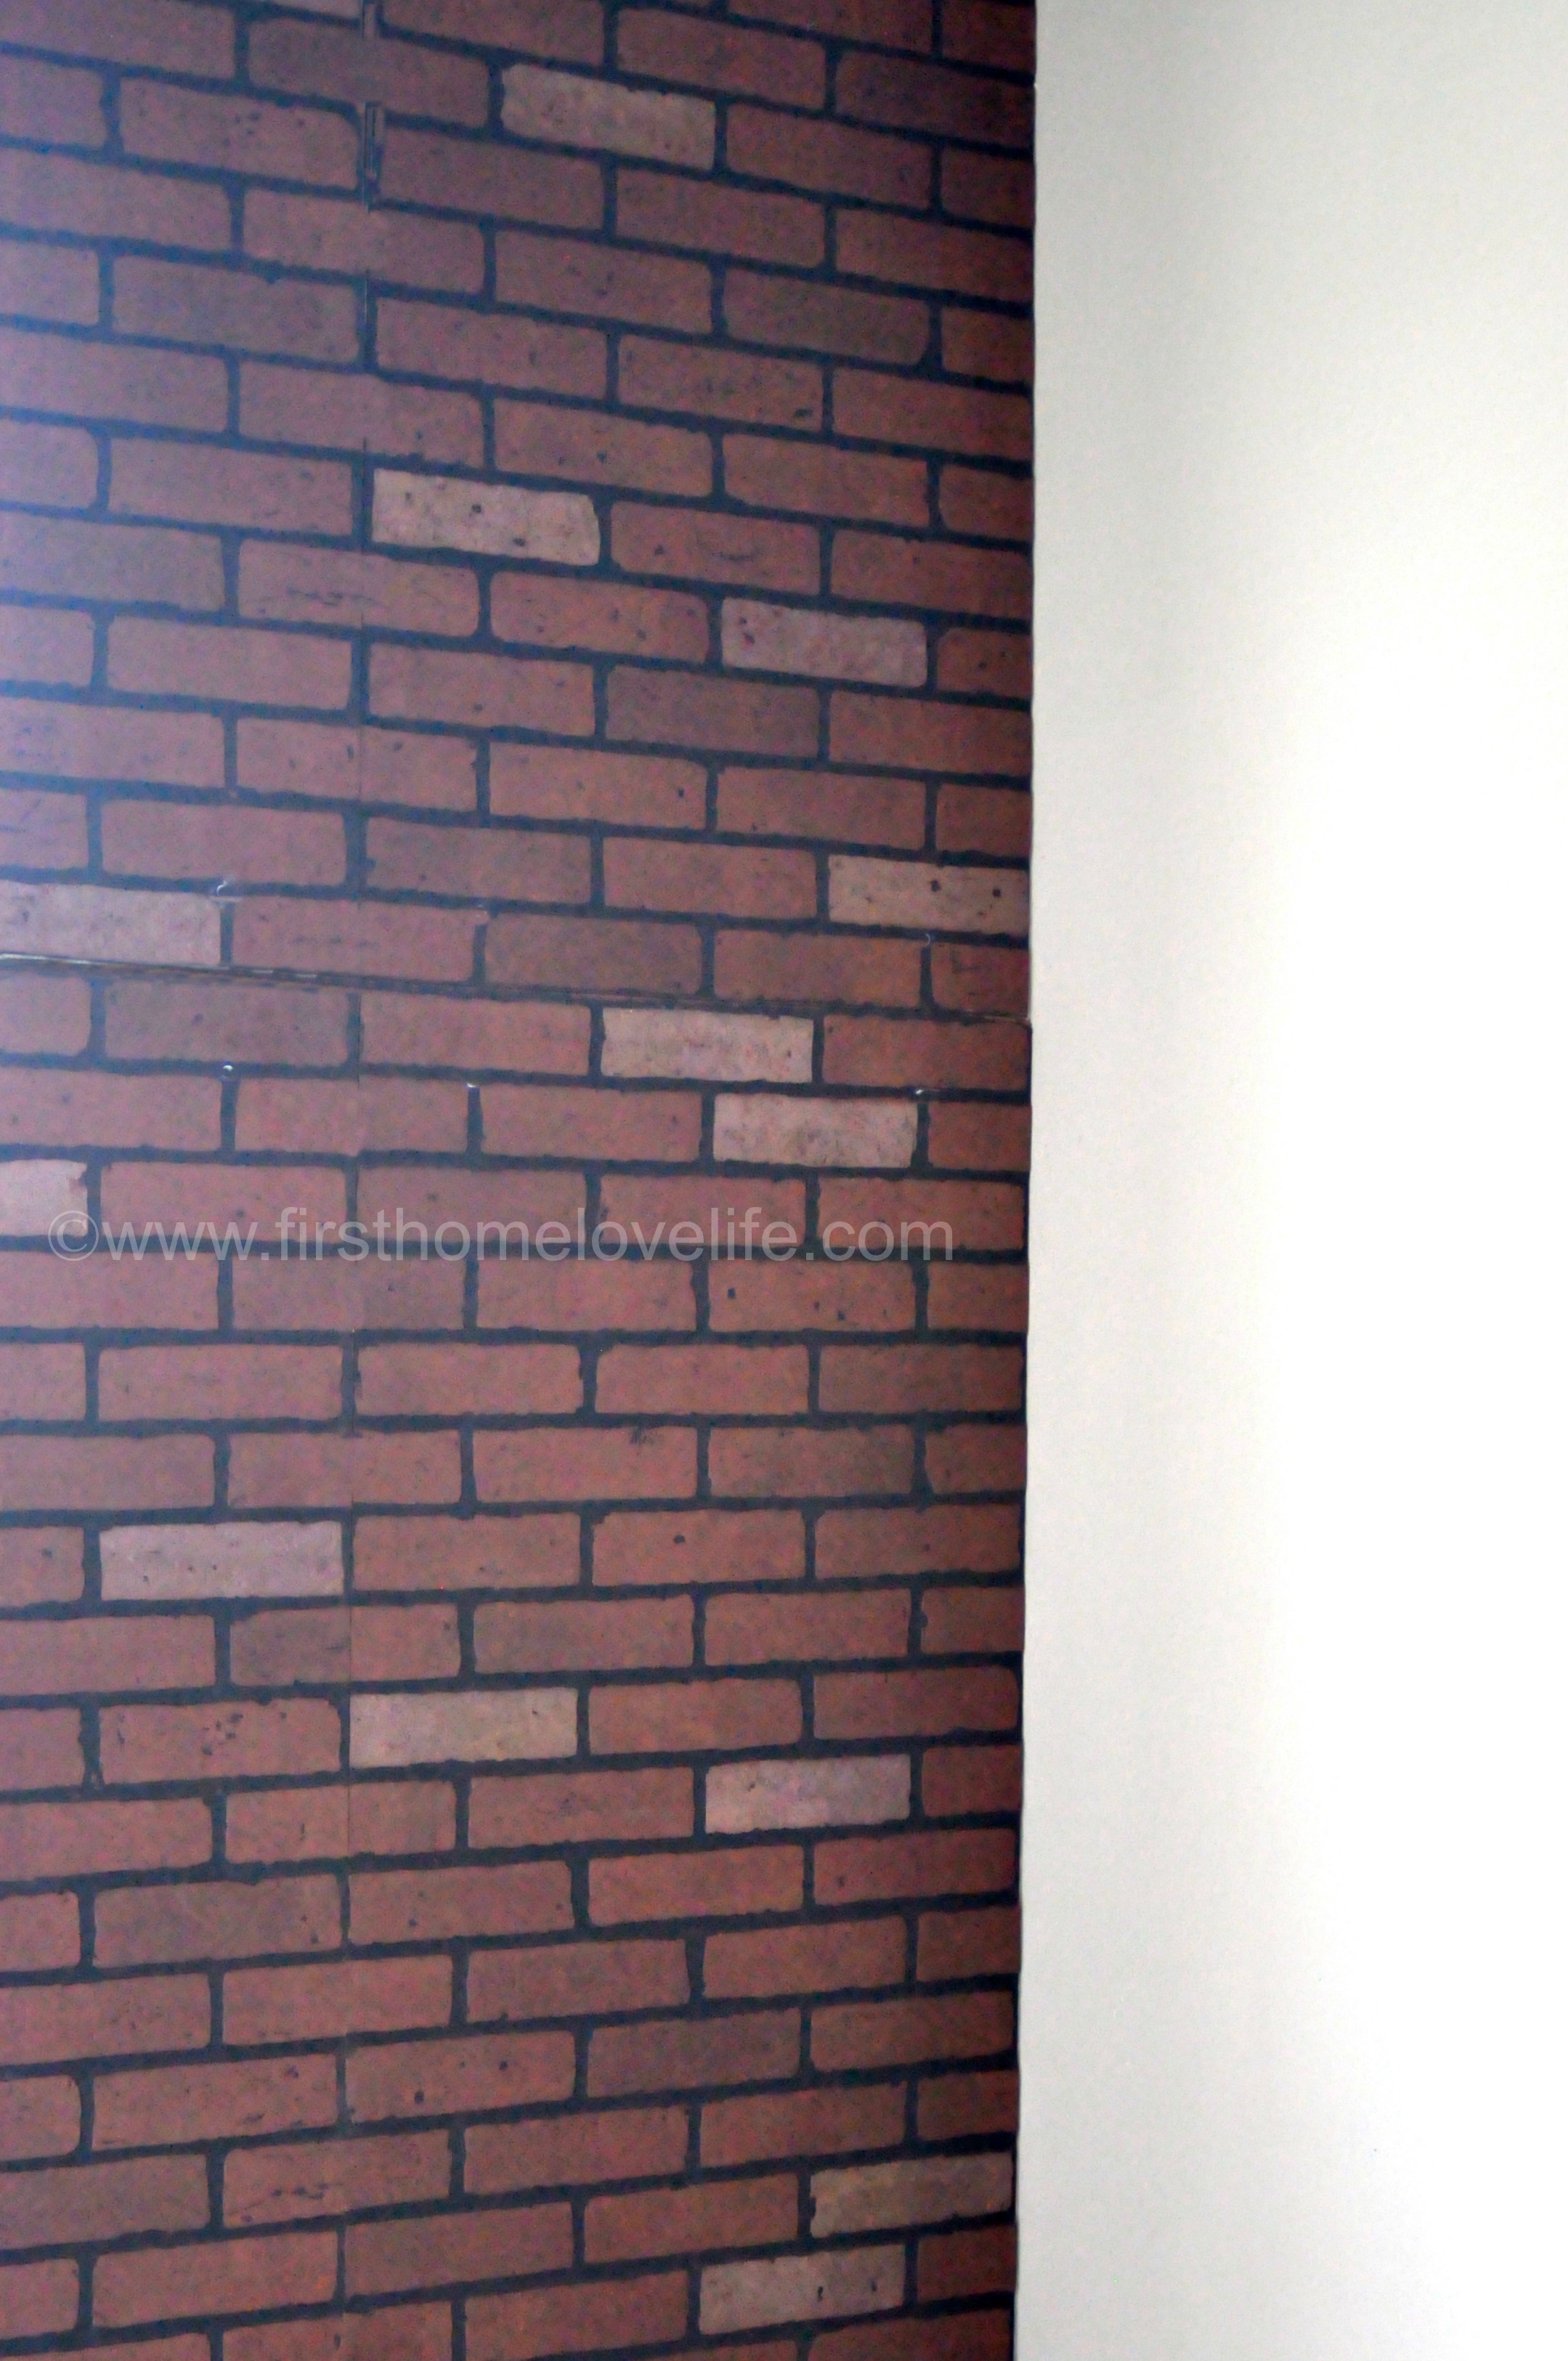 Free Download Brick Wall Panels Lowes Faux Stone Wall Panels Faux Brick Wallpaper 2159x3251 For Your Desktop Mobile Tablet Explore 49 Faux Brick Wallpaper Lowes Faux Brick Wallpaper Lowes